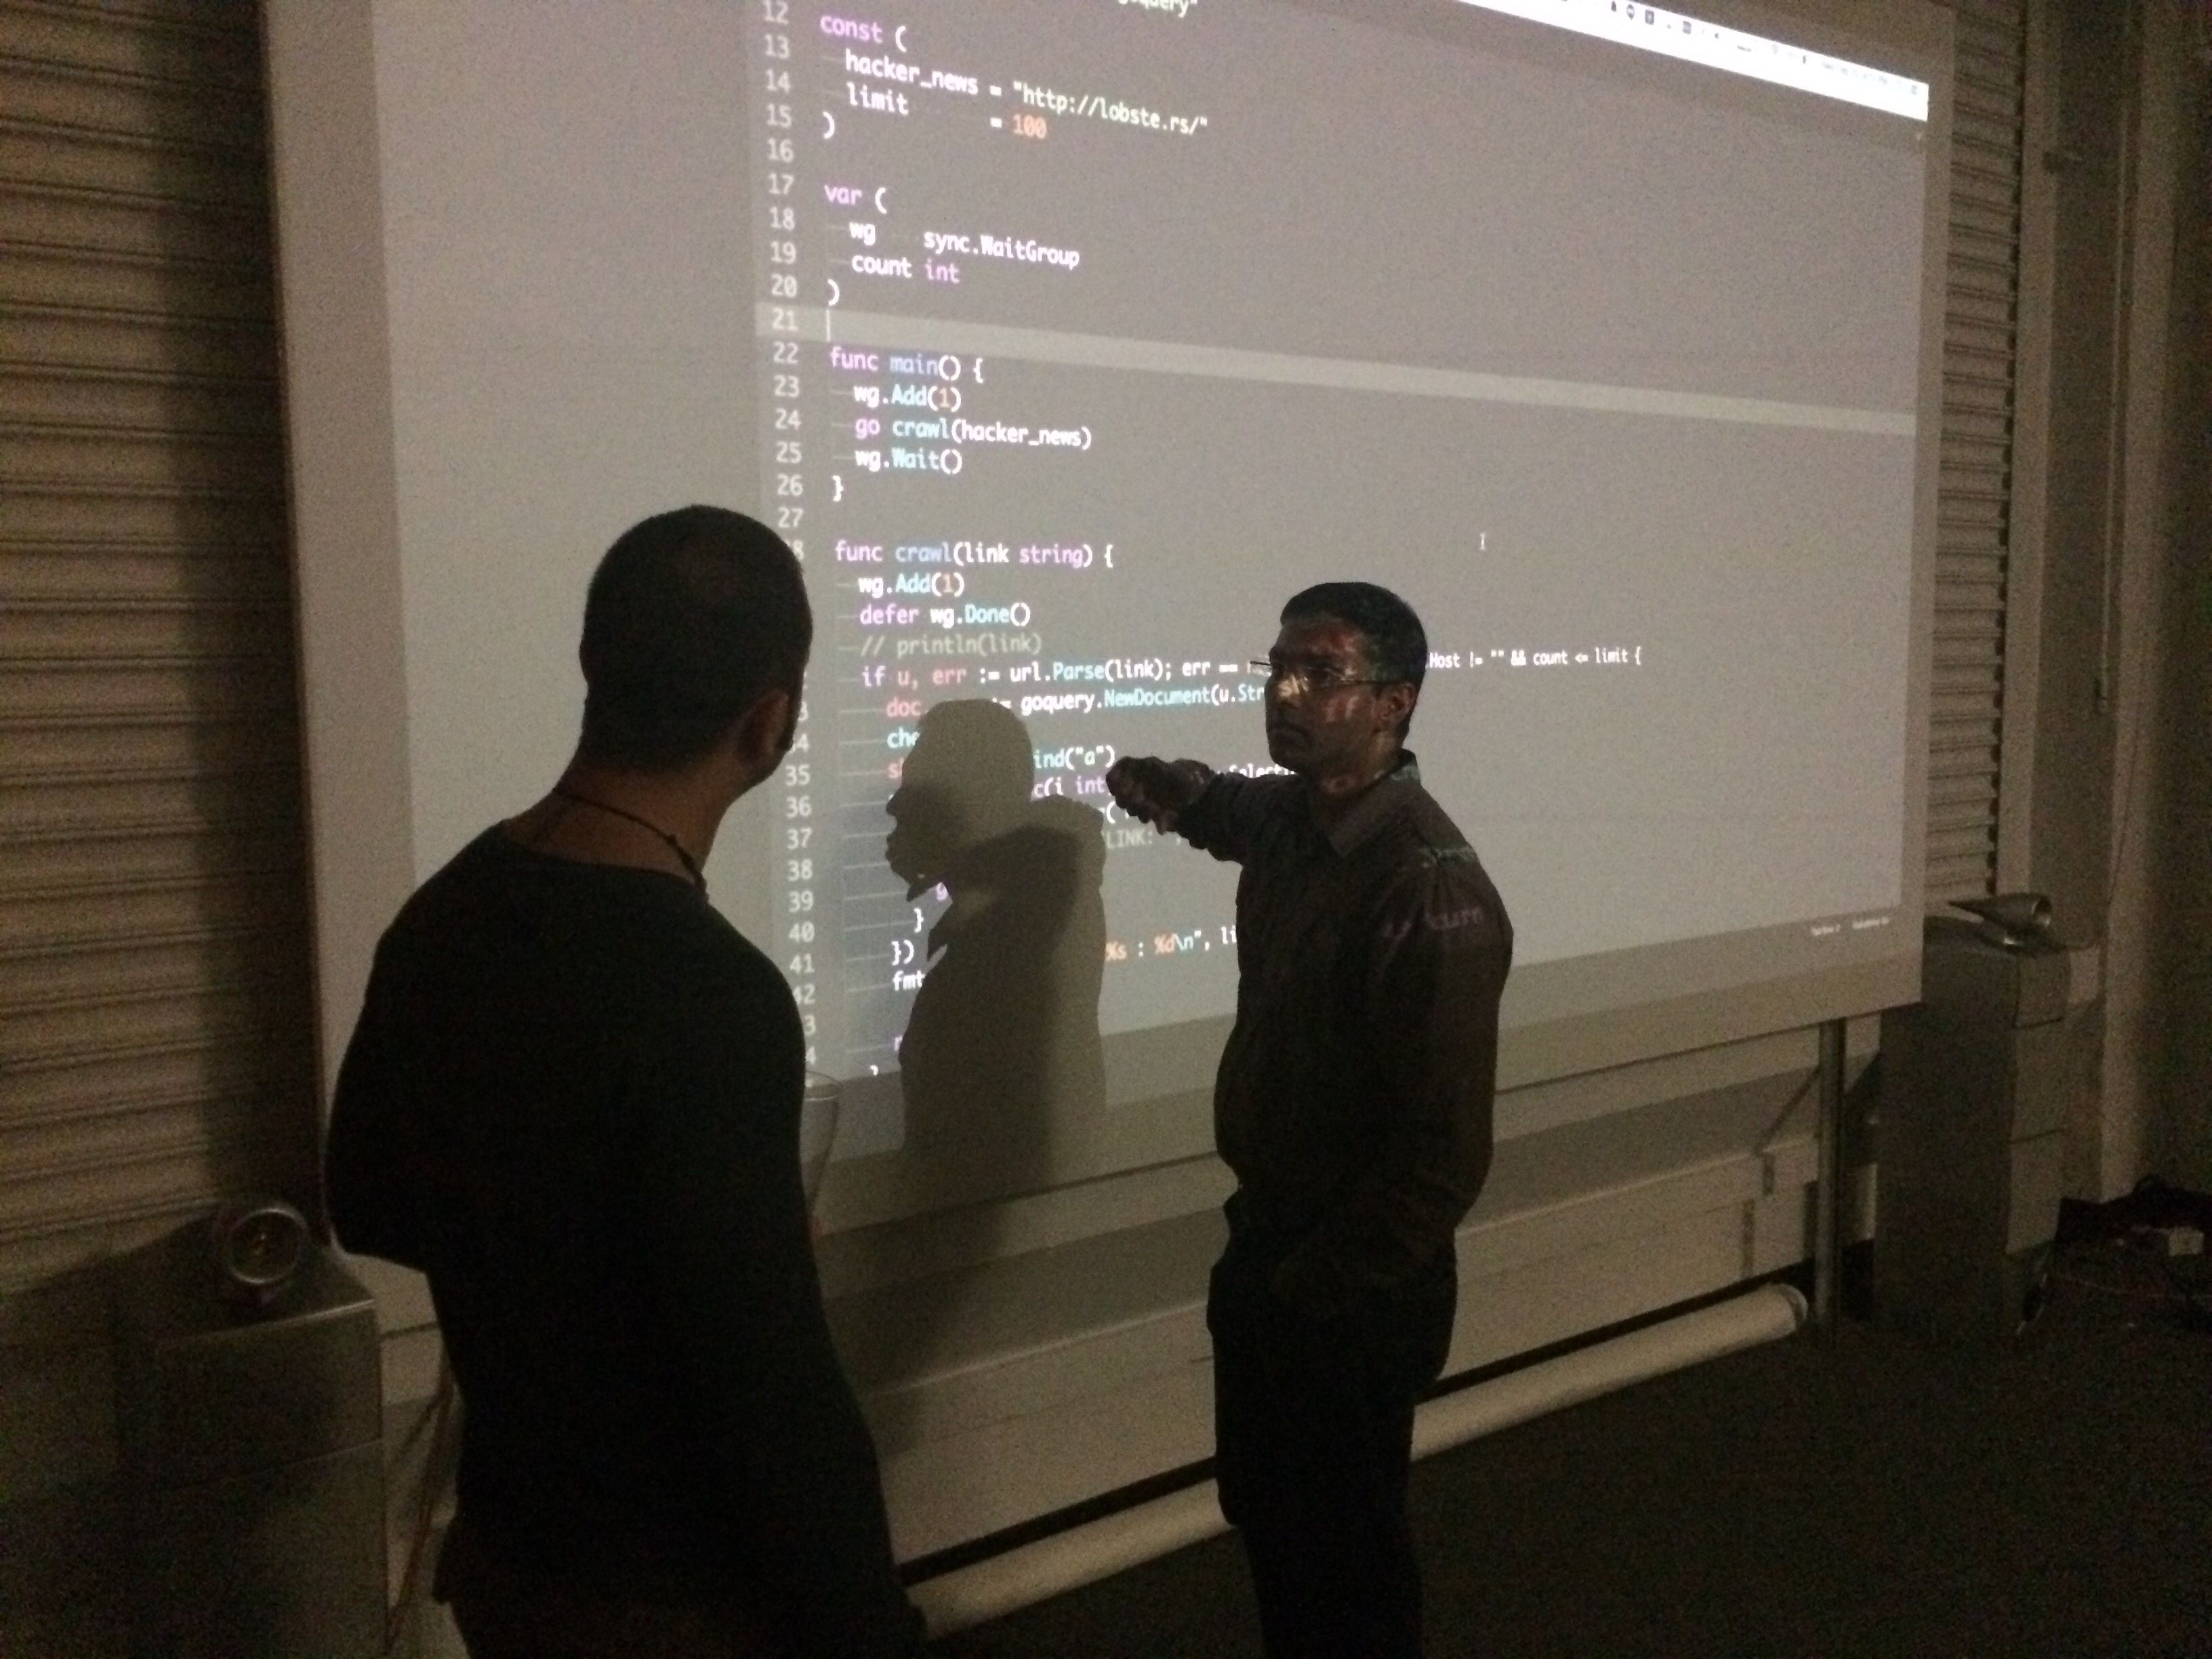 San Diego and North County Gophers - A Go (golang) Group